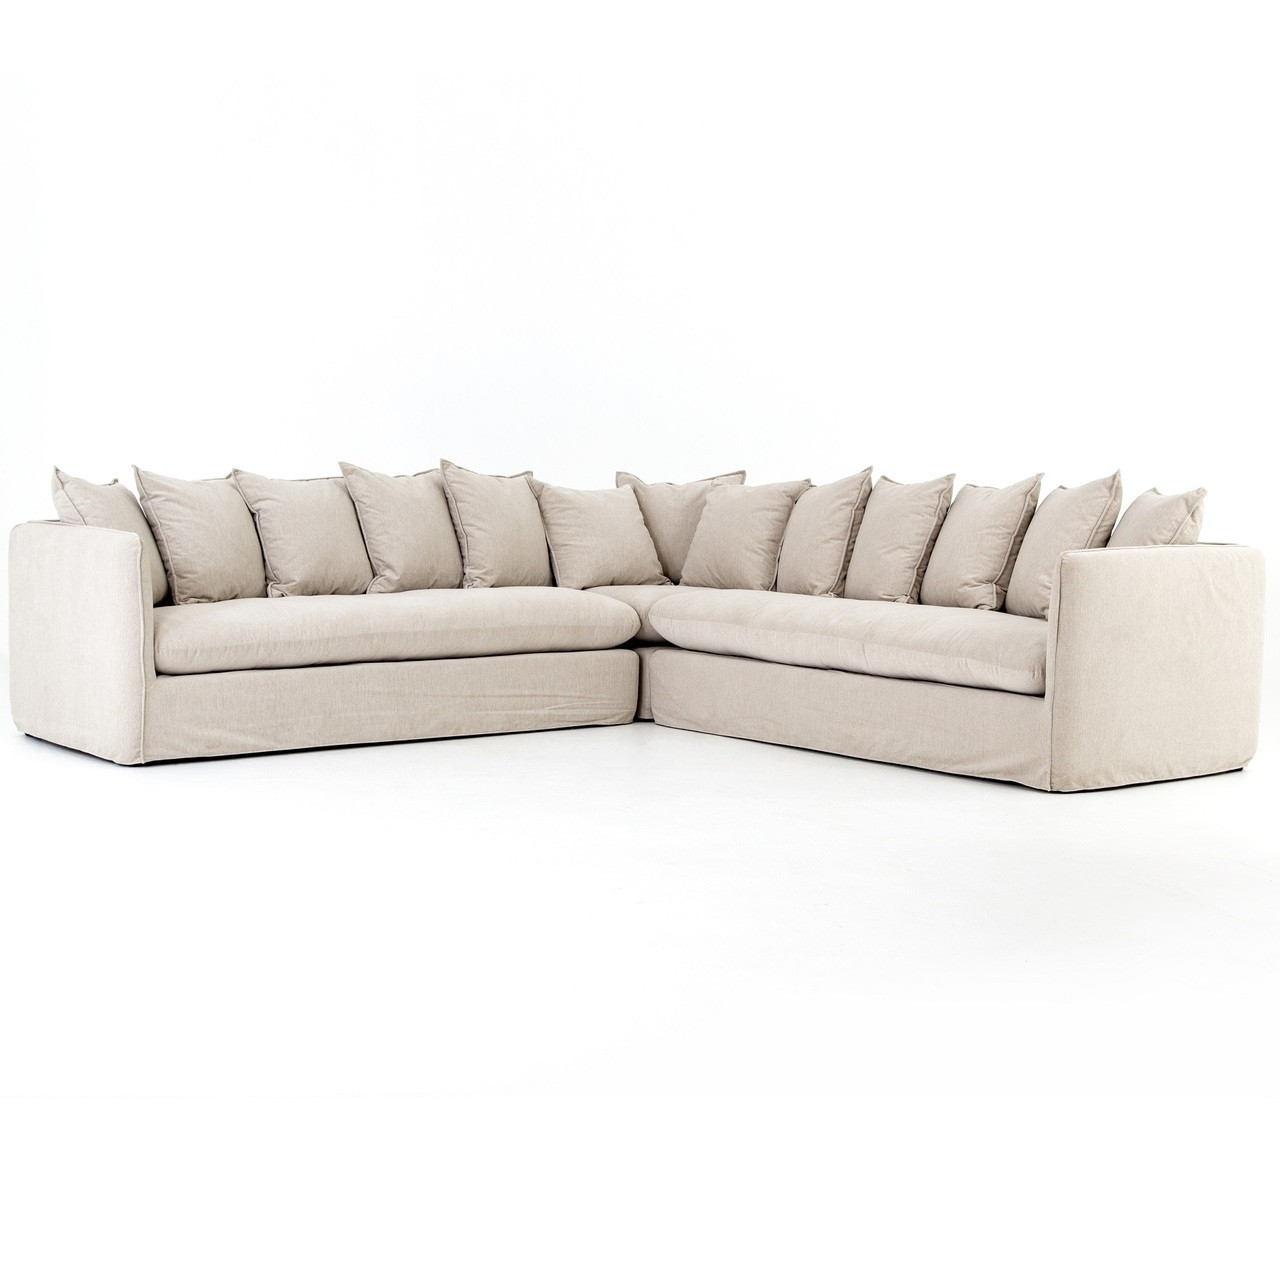 Nora Modern Slipcovered Corner Sectional Sofa   Oatmeal